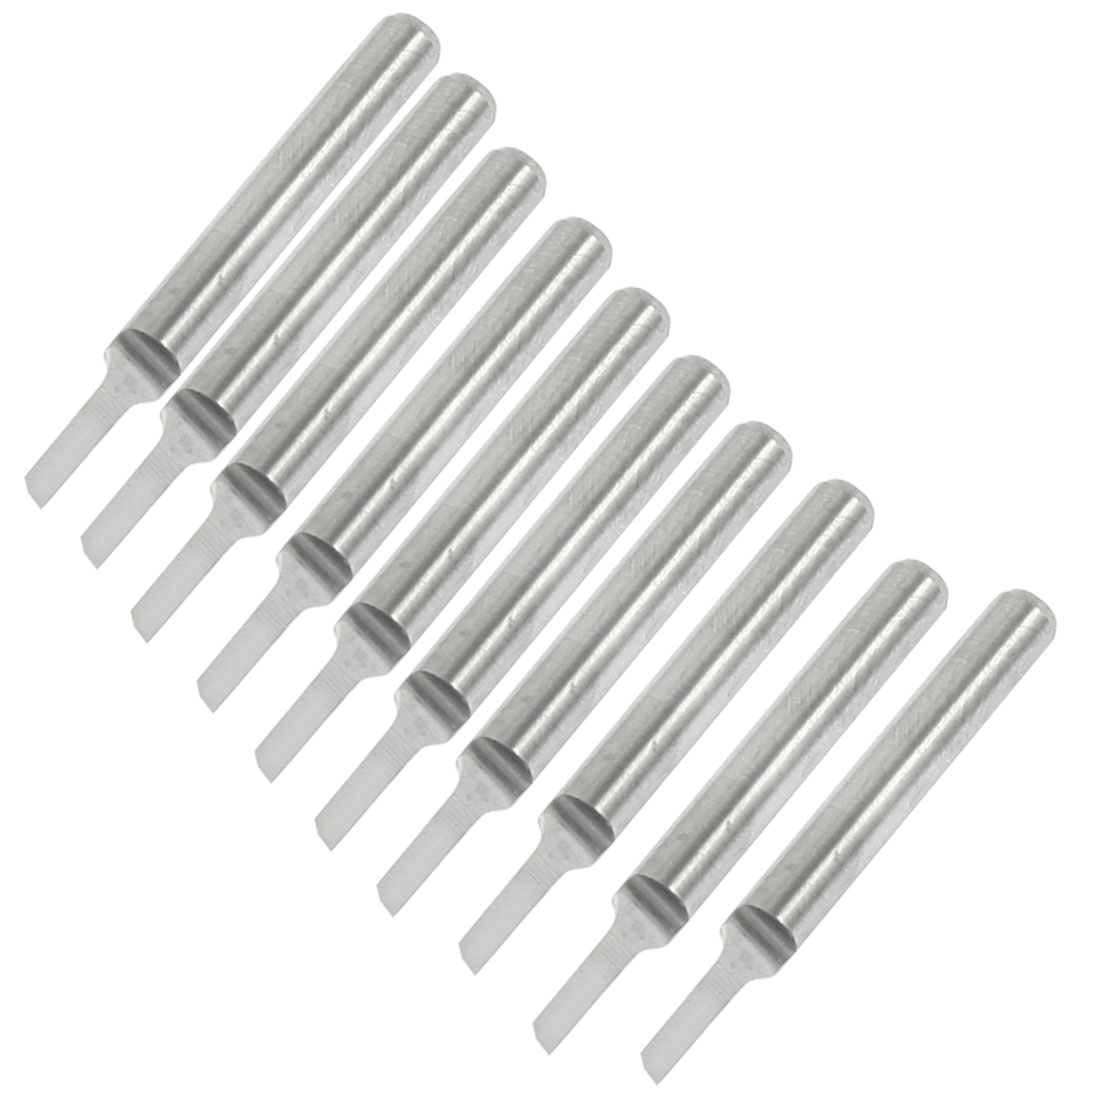 "10 Pcs 1/8"" Shank 1.5mm Blade Width Engraving Straight Router Bits"